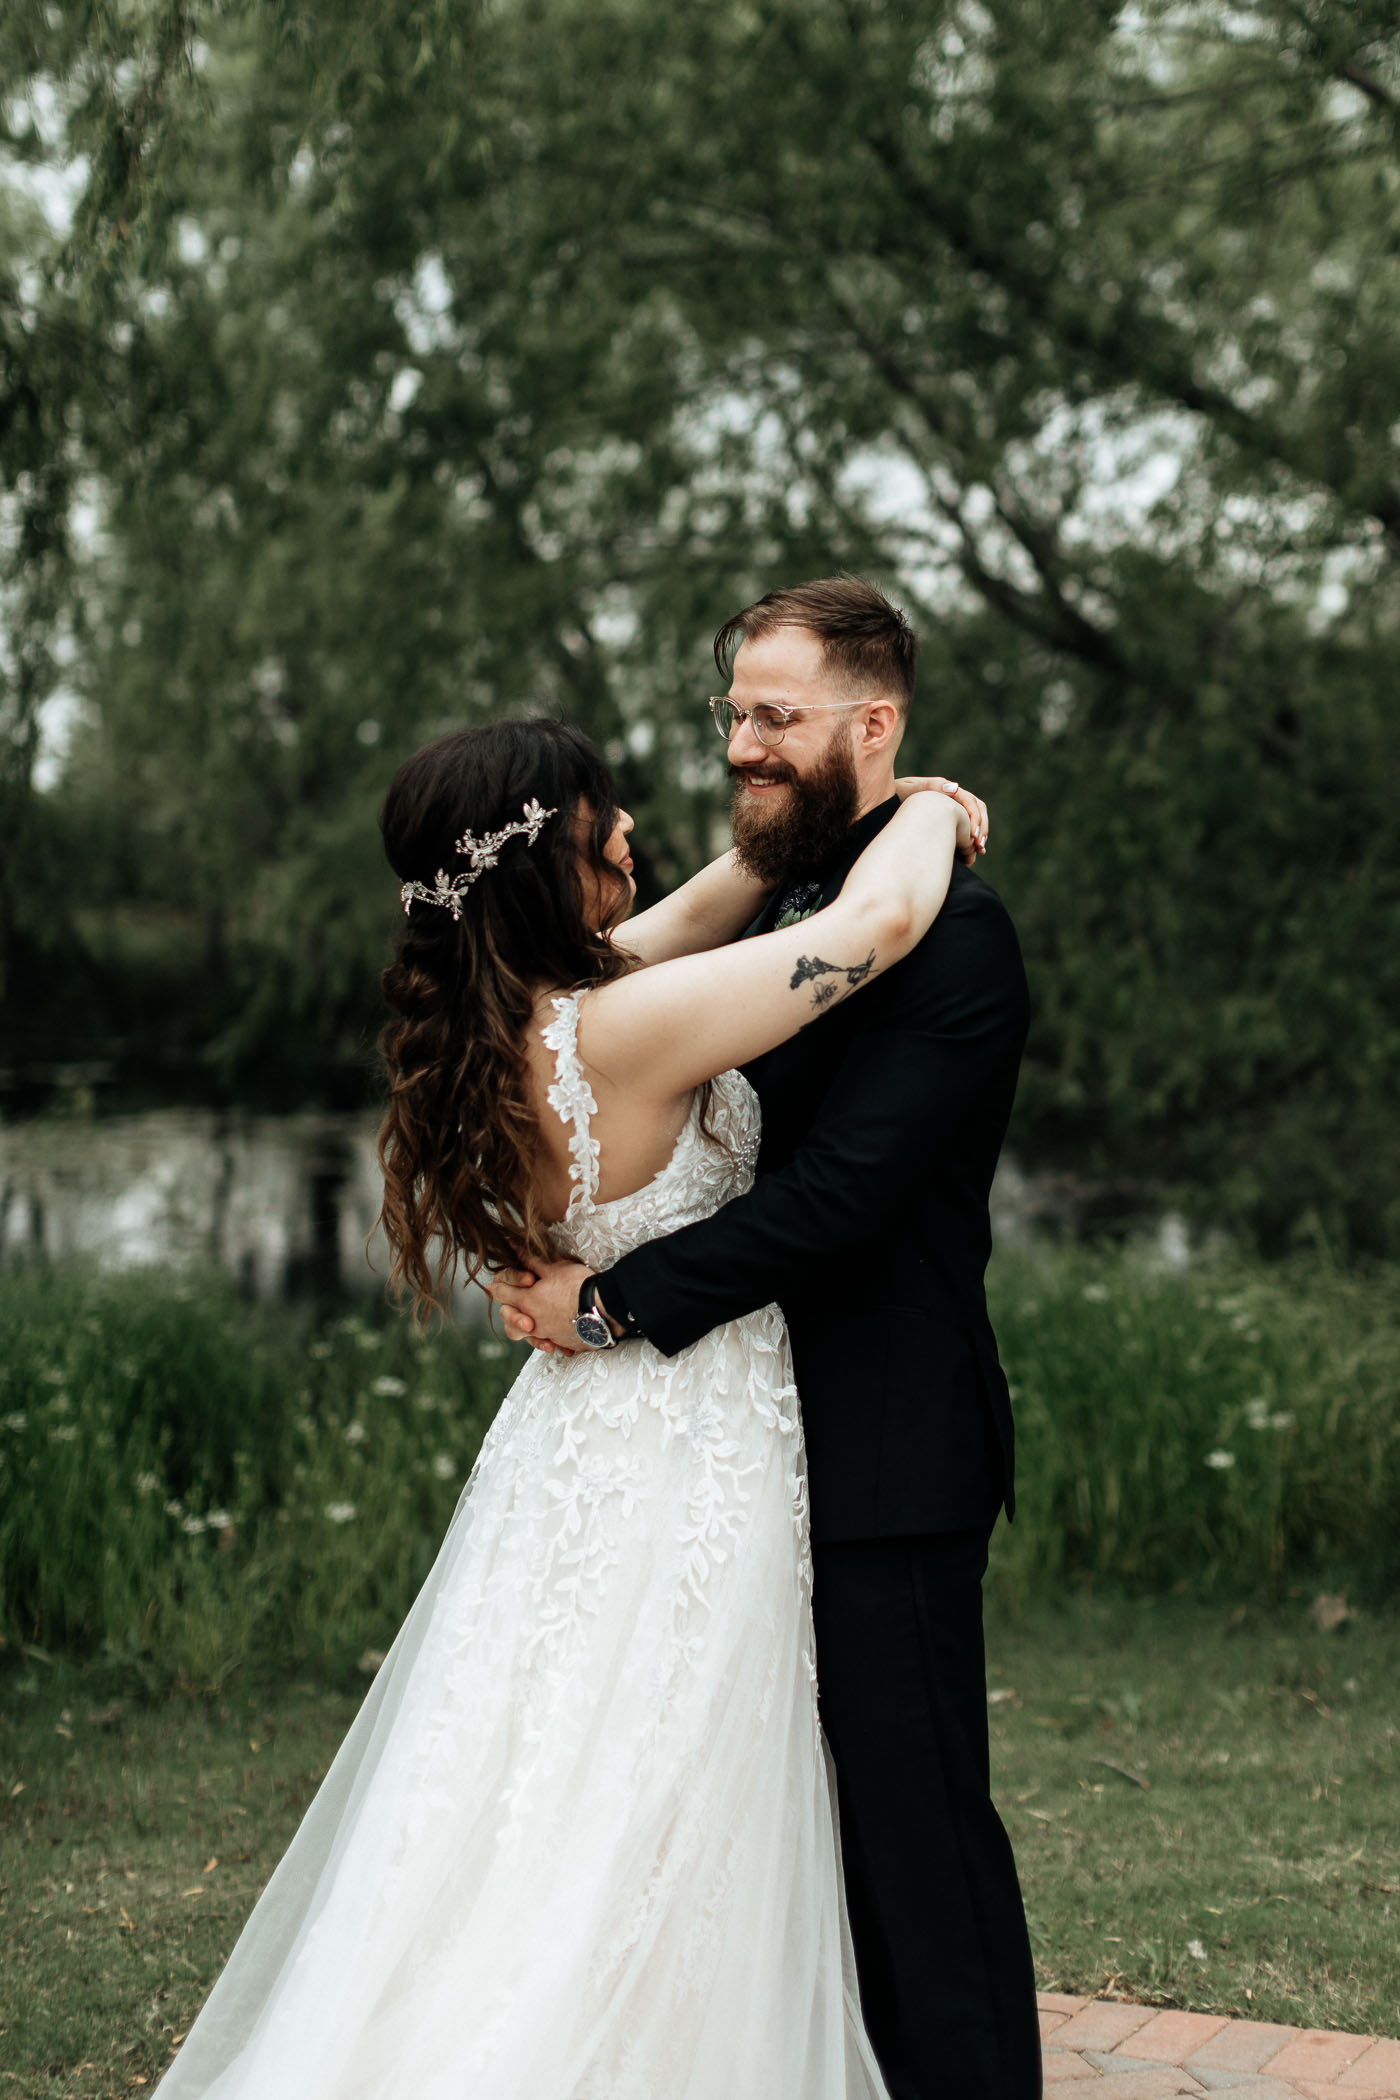 Bride and groom taking photos at natural wedding venue in Texas